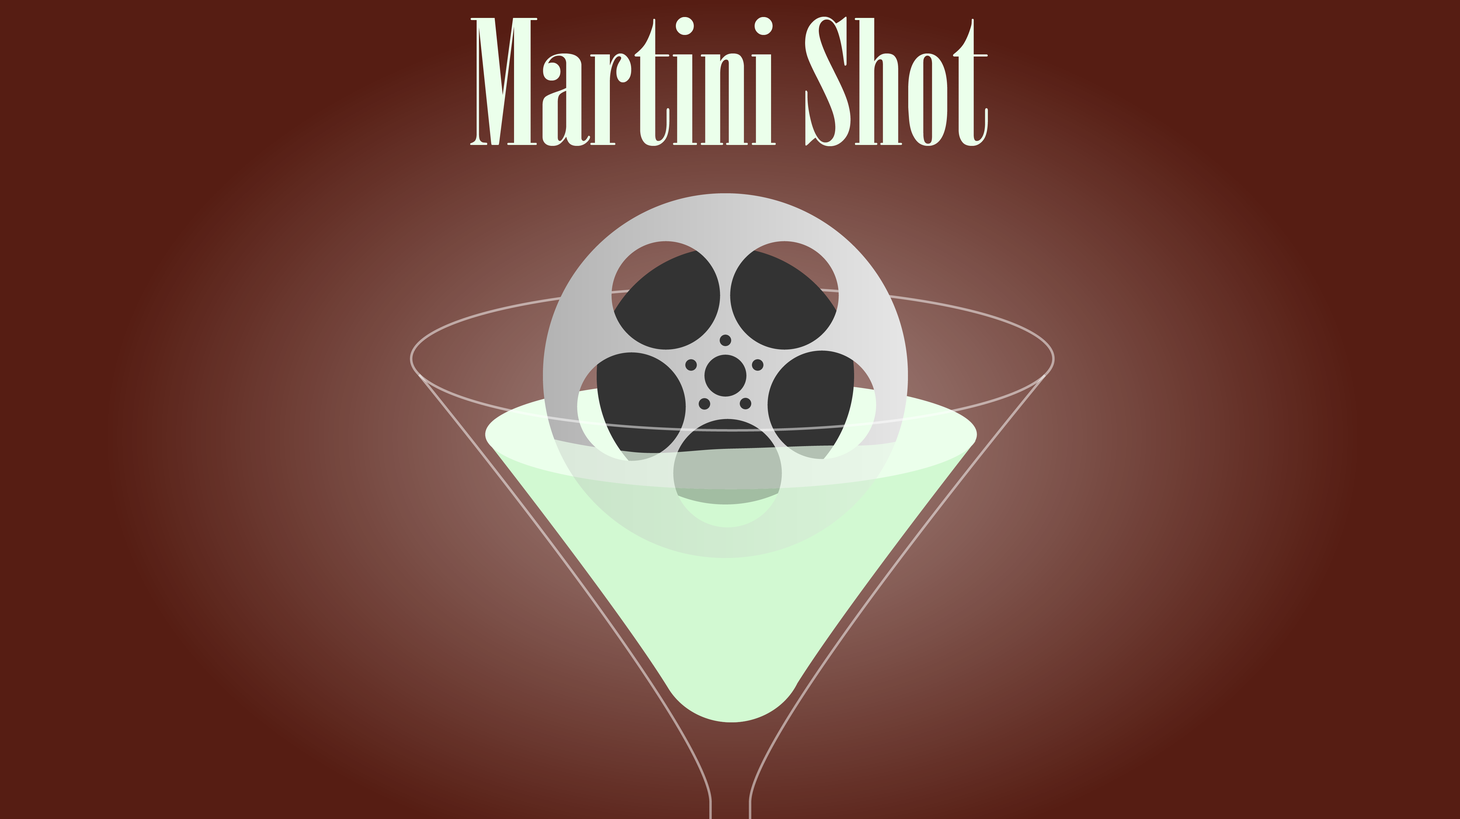 This is Rob Long, and on today's Martini Shot I talk about impossible it is for some people to remember that they have enough stuff, enough of everything. And by some people I mean, me. But maybe not just me.